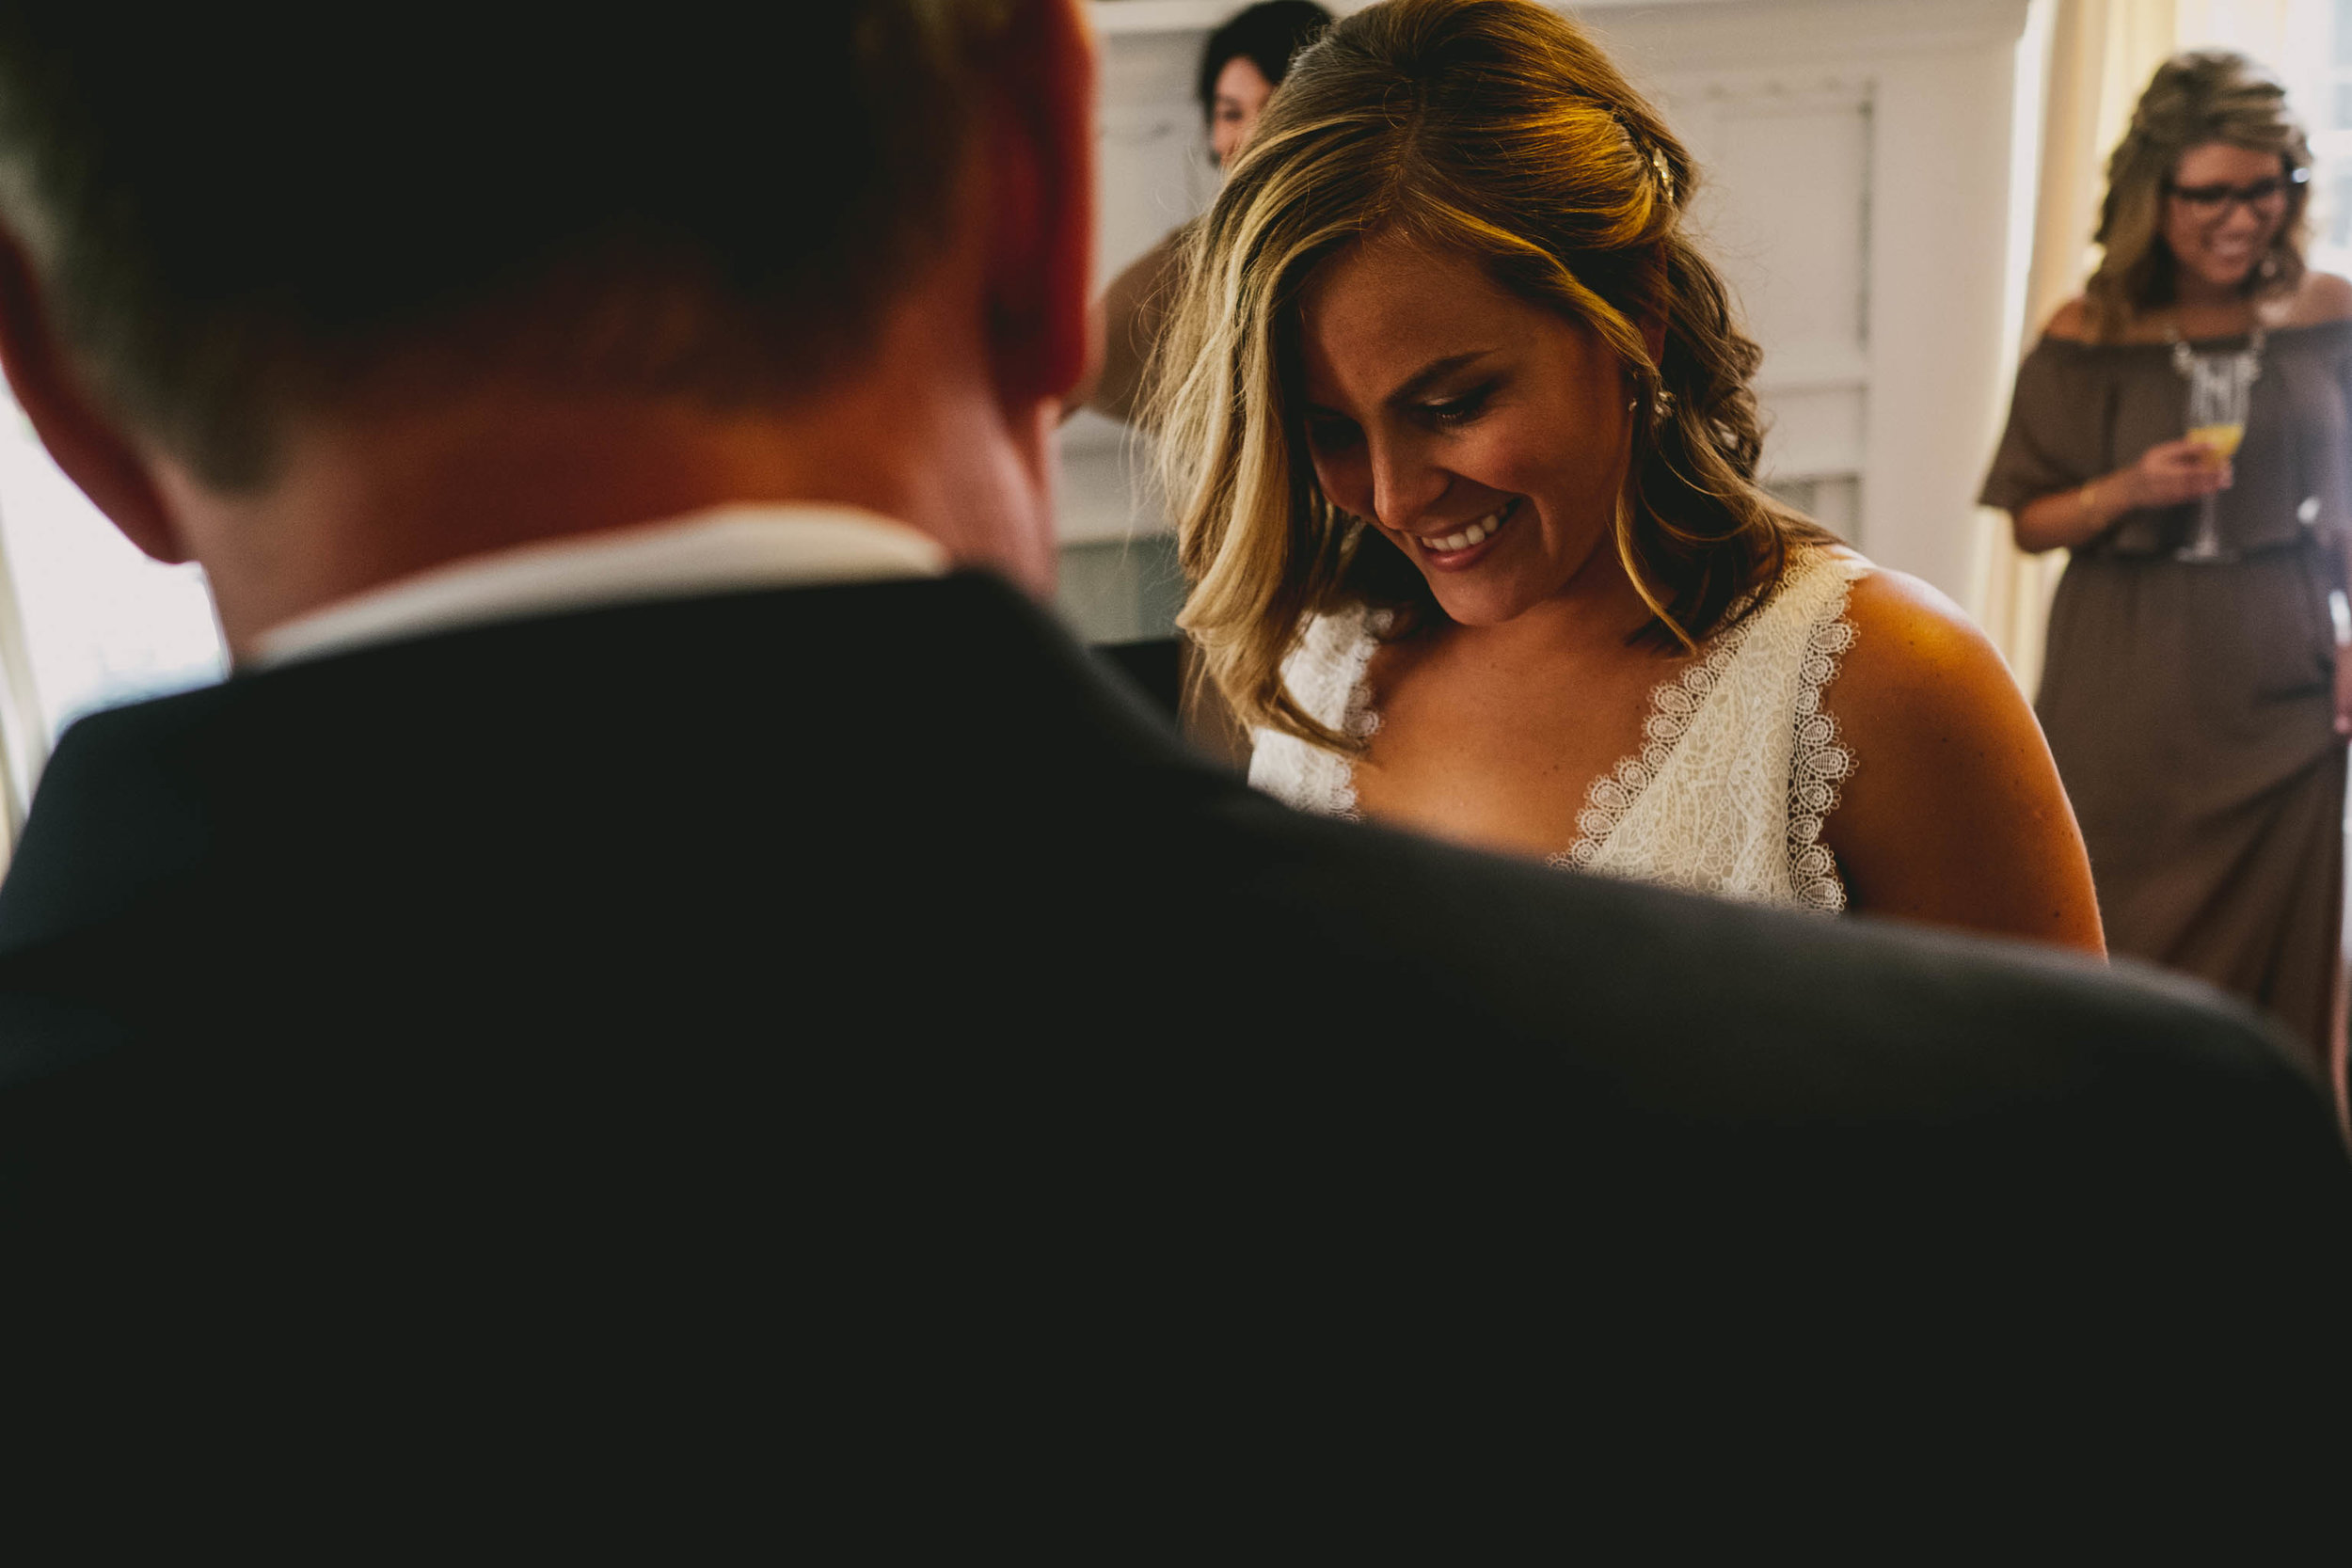 mims-house-wedding-bride-smiling.jpg